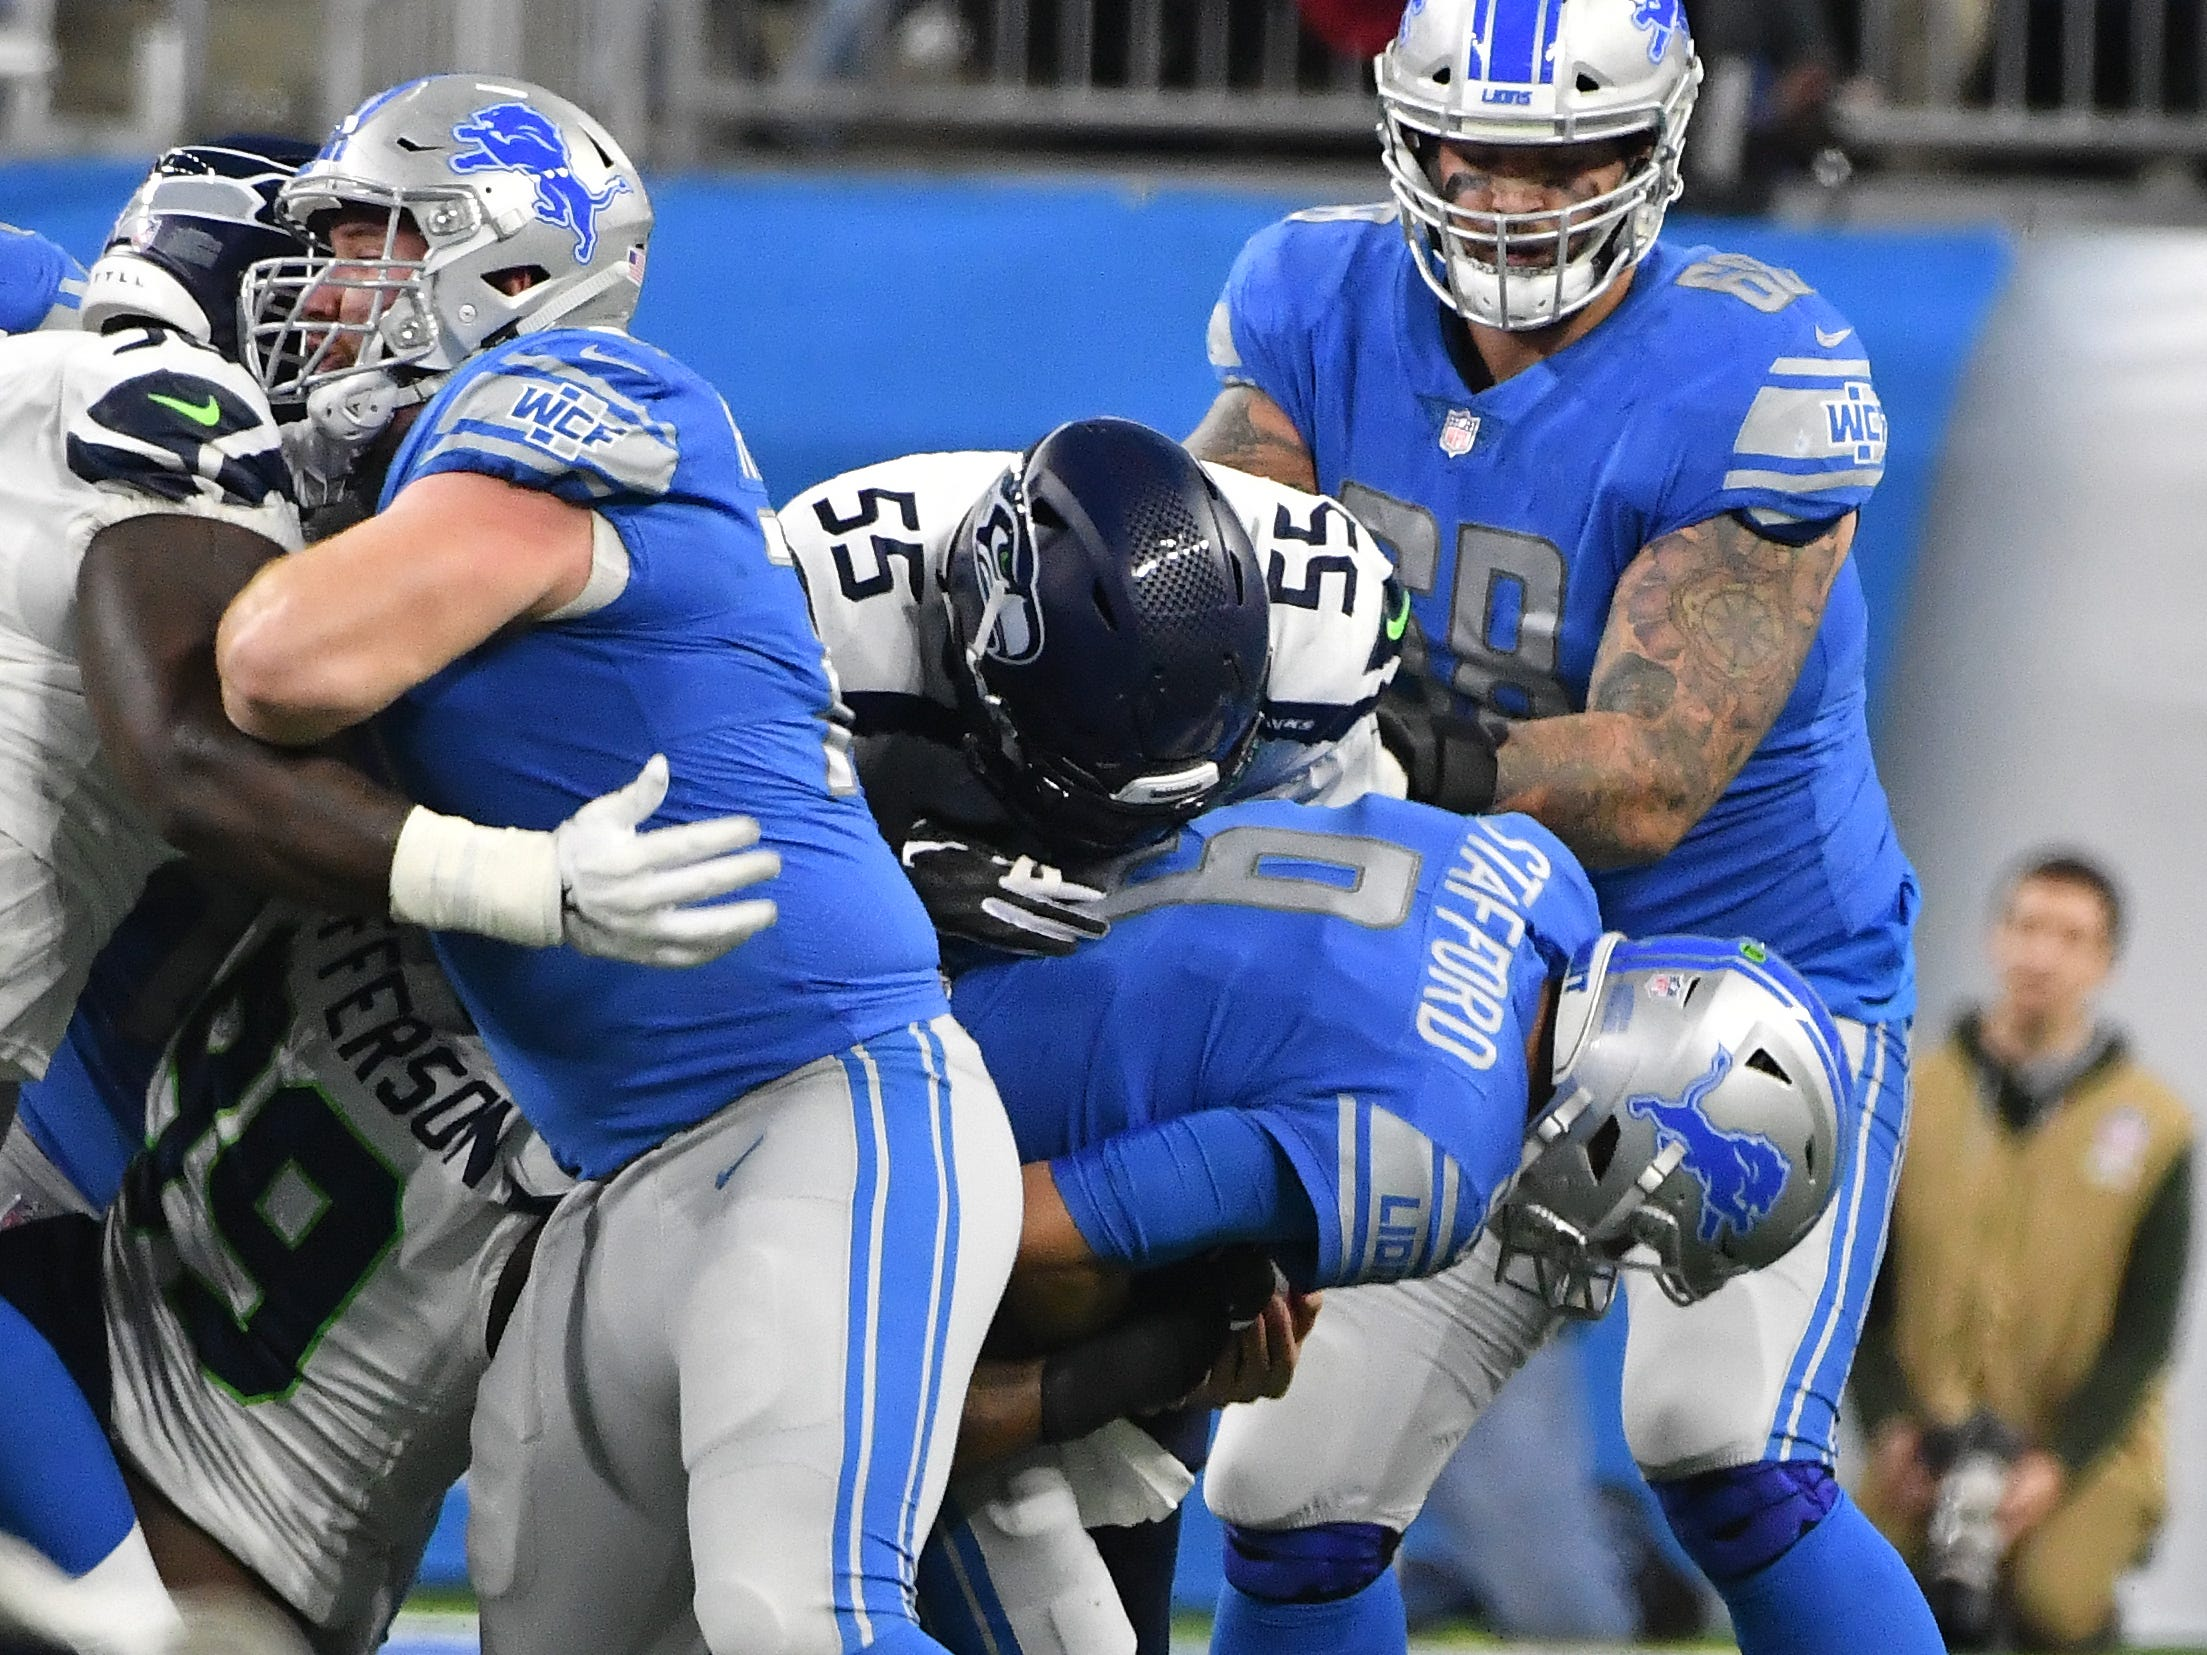 Lions quarterback Matthew Stafford is sacked by Seahawks' Frank Clark in the second quarter.